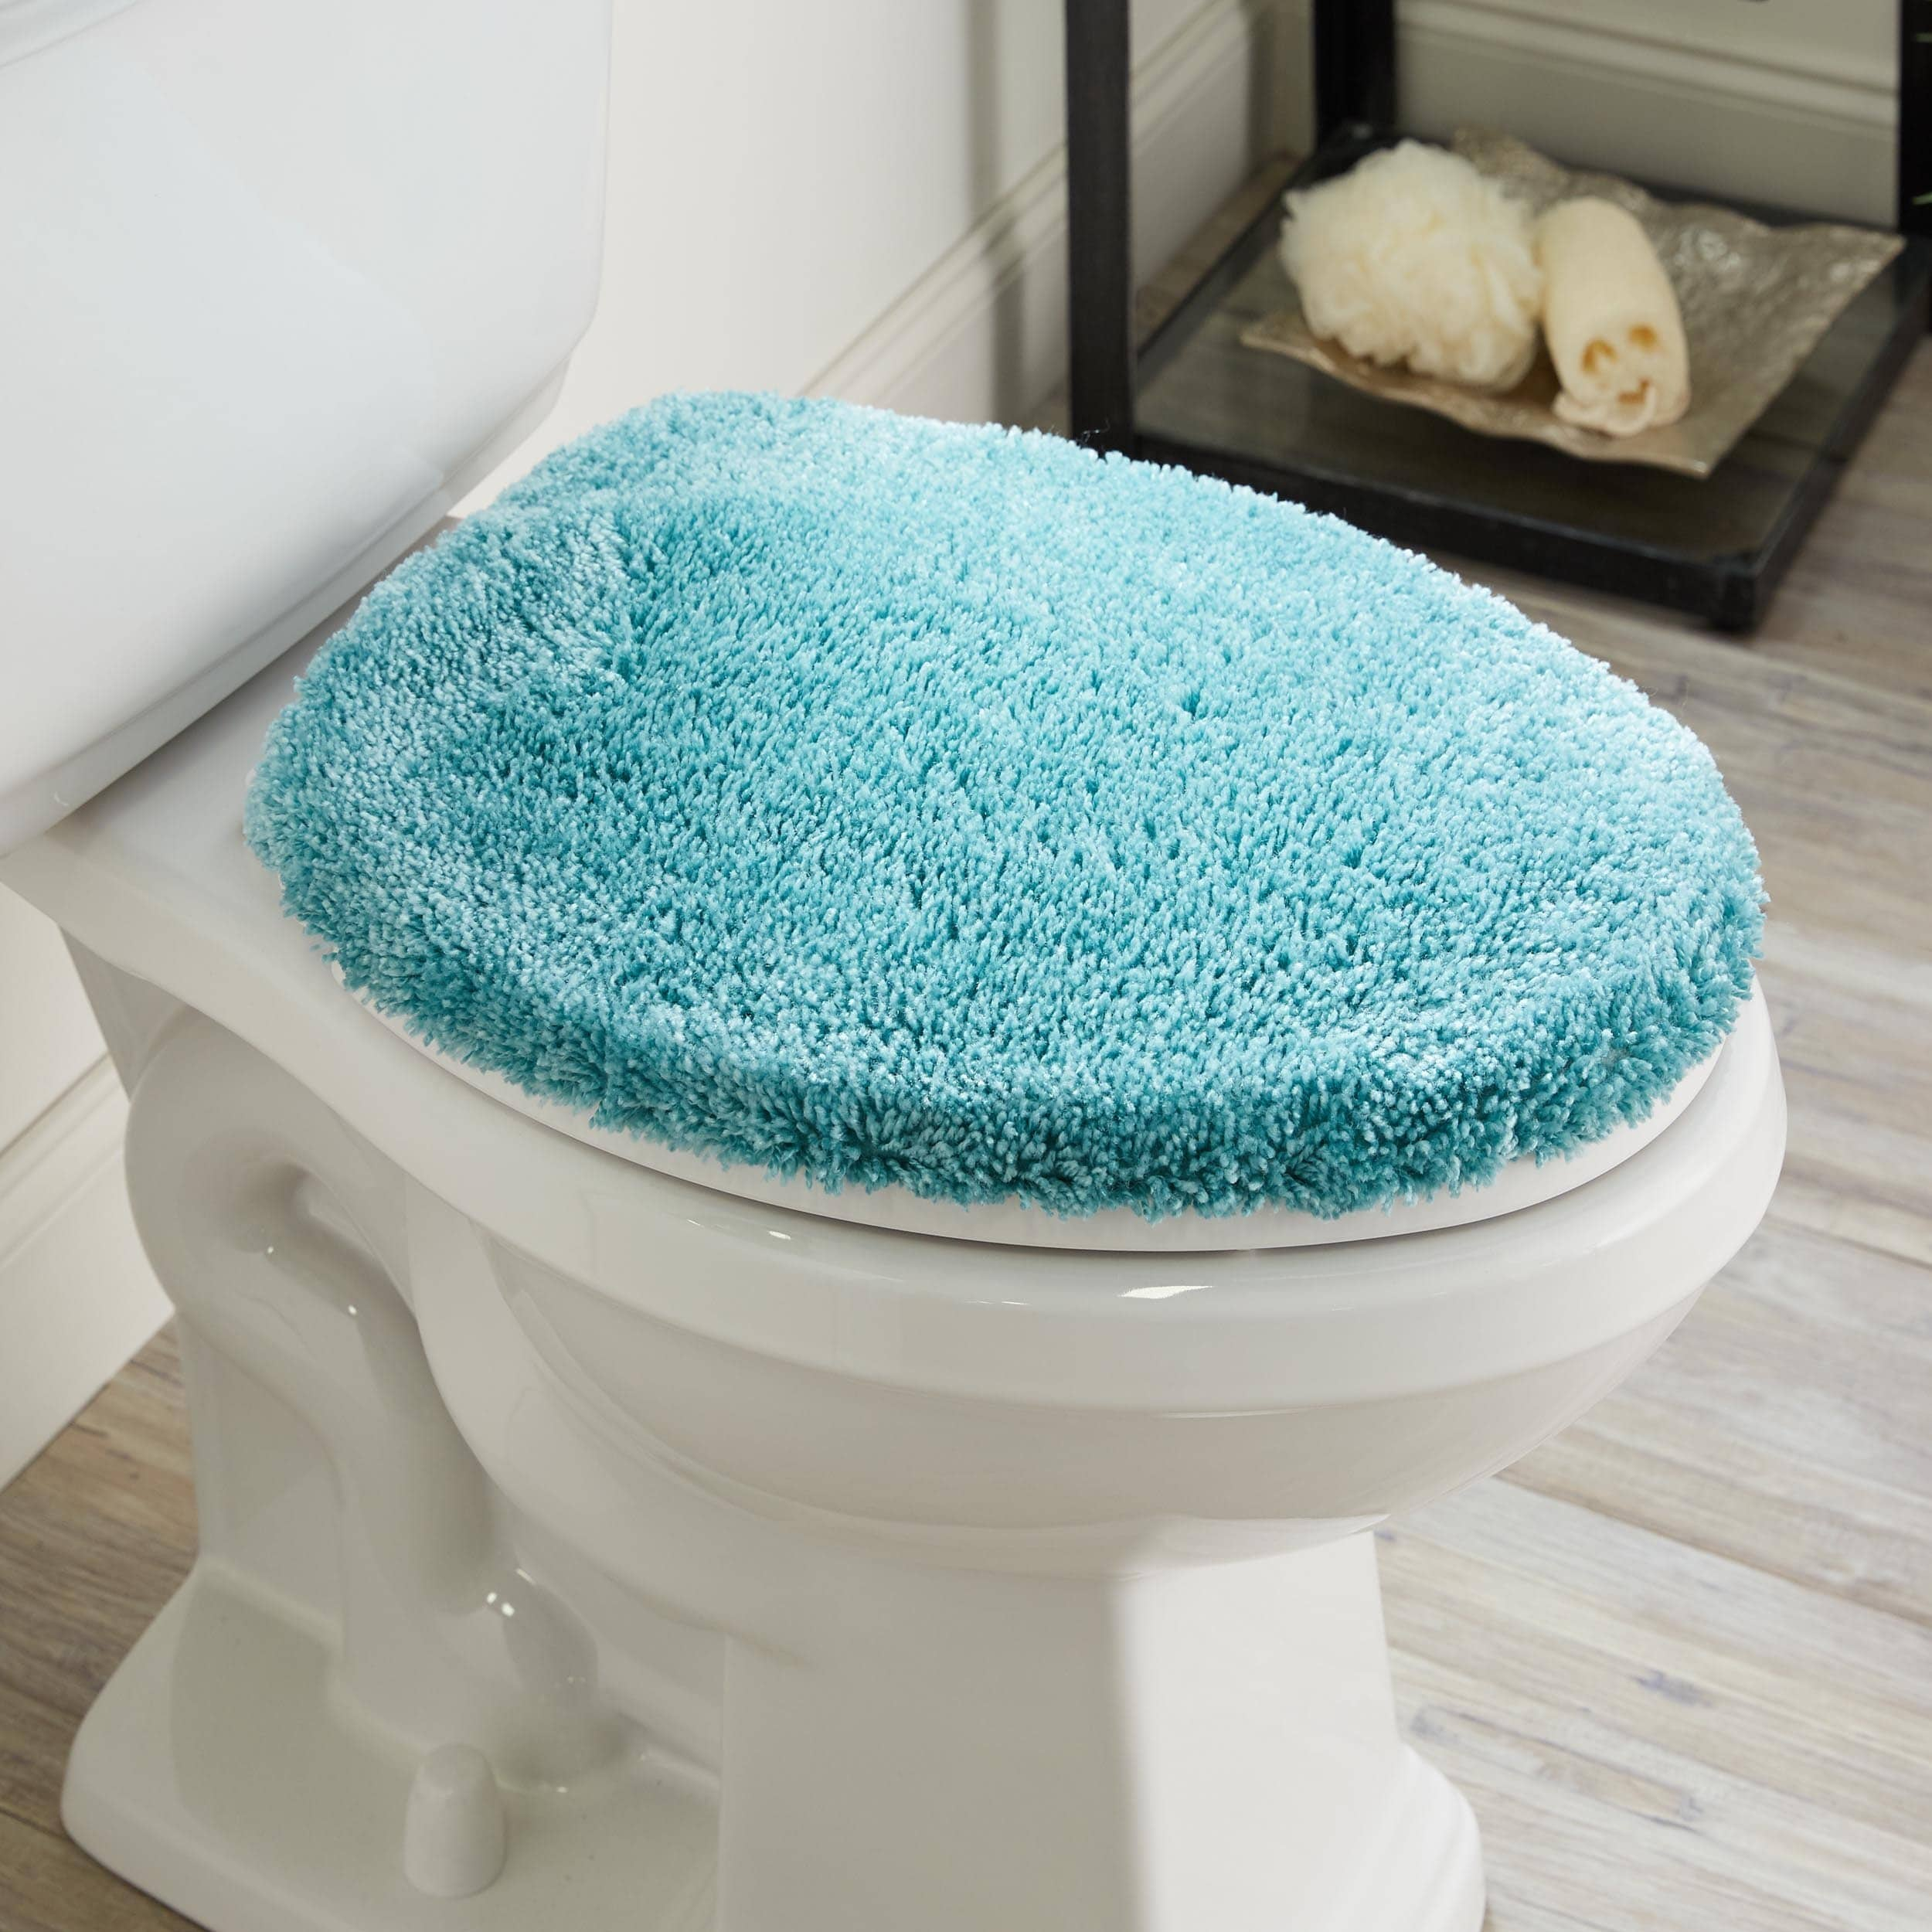 Shop Mohawk Spa Toilet Lid Cover (1'5x1'9)   Overstock   13741914